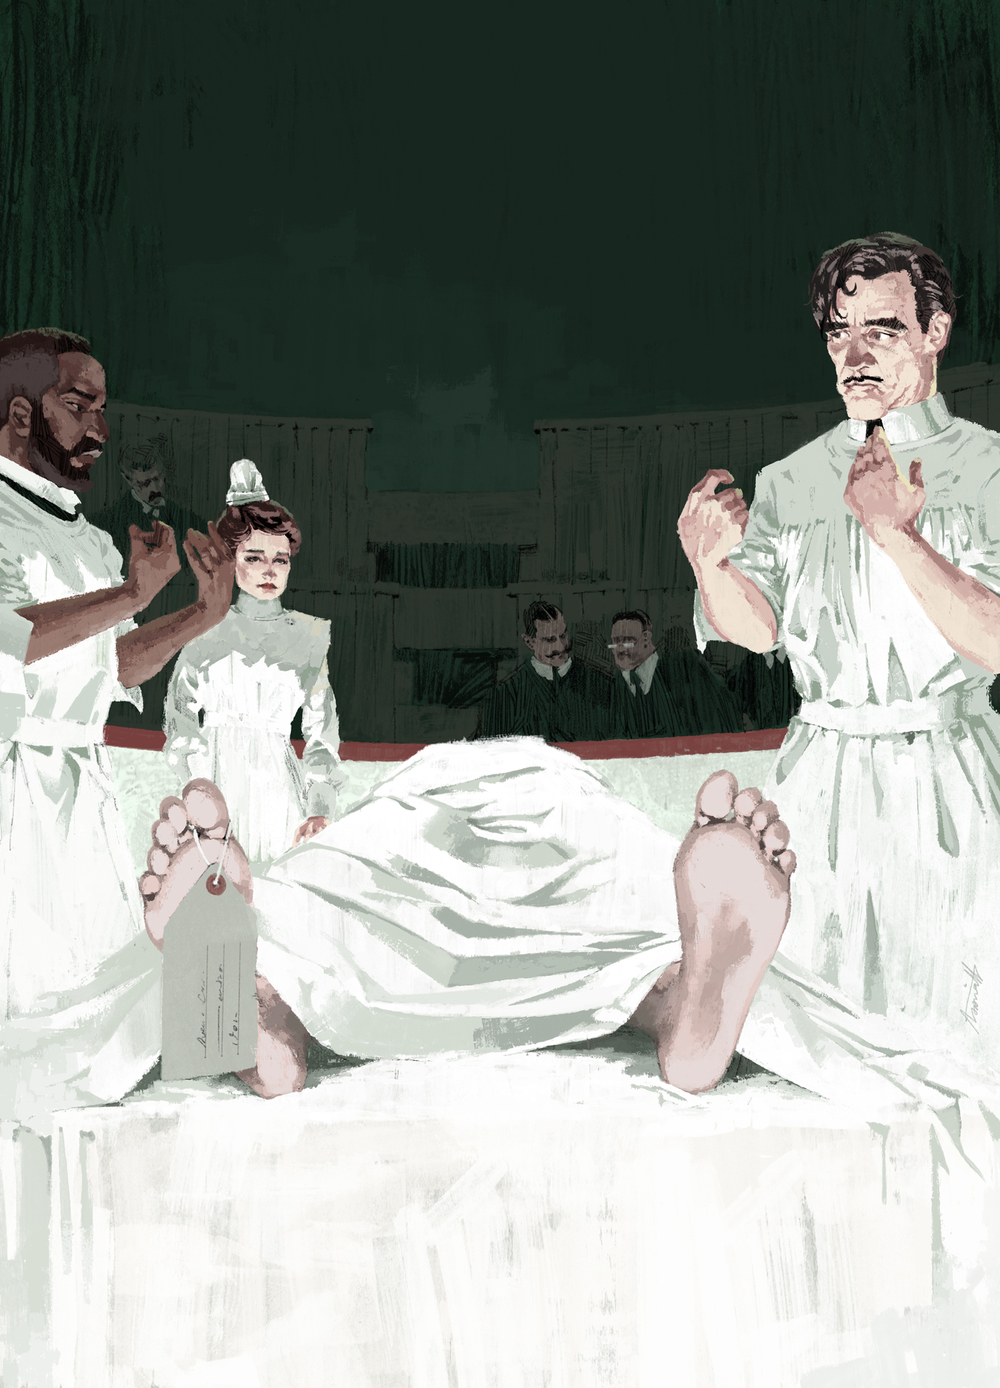 Clive Owen heads the cast of Soderburgh's The Knick for The New Yorker by Marc Aspinall